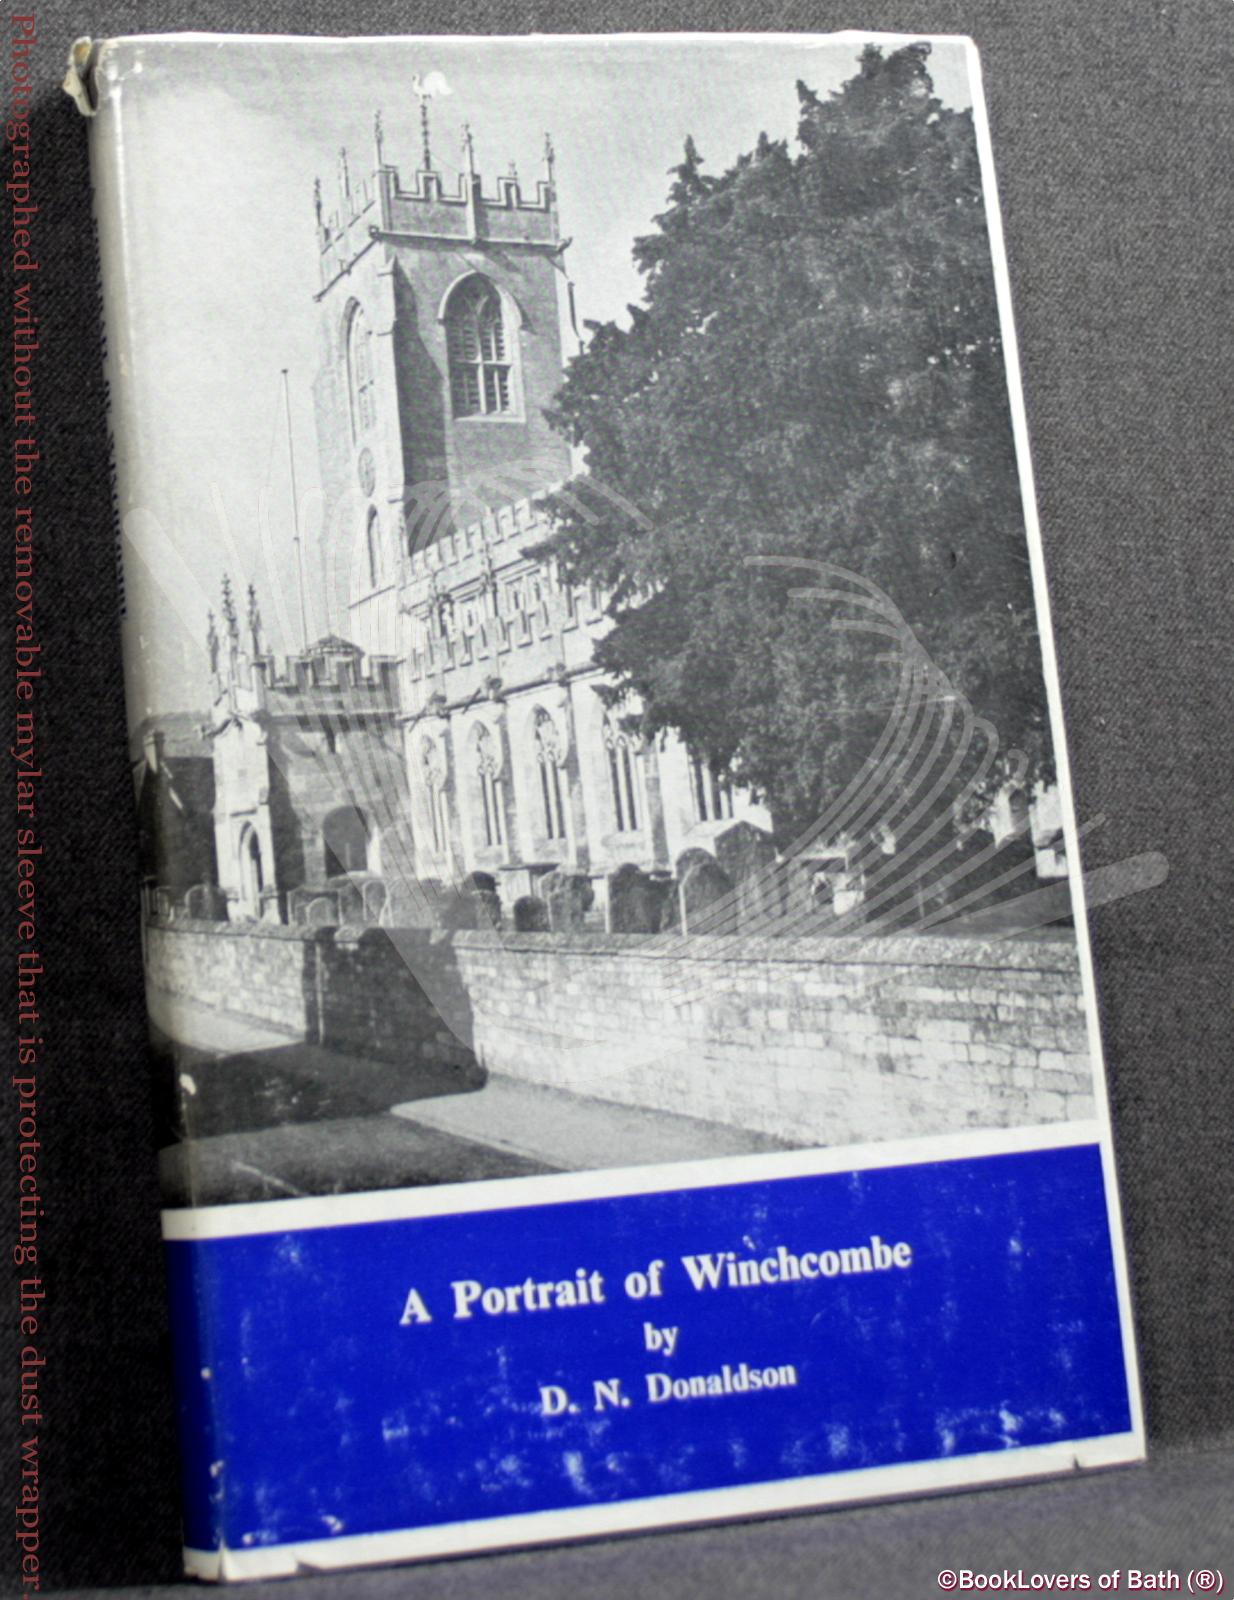 A Portrait of Winchcombe - D. N. Donaldson